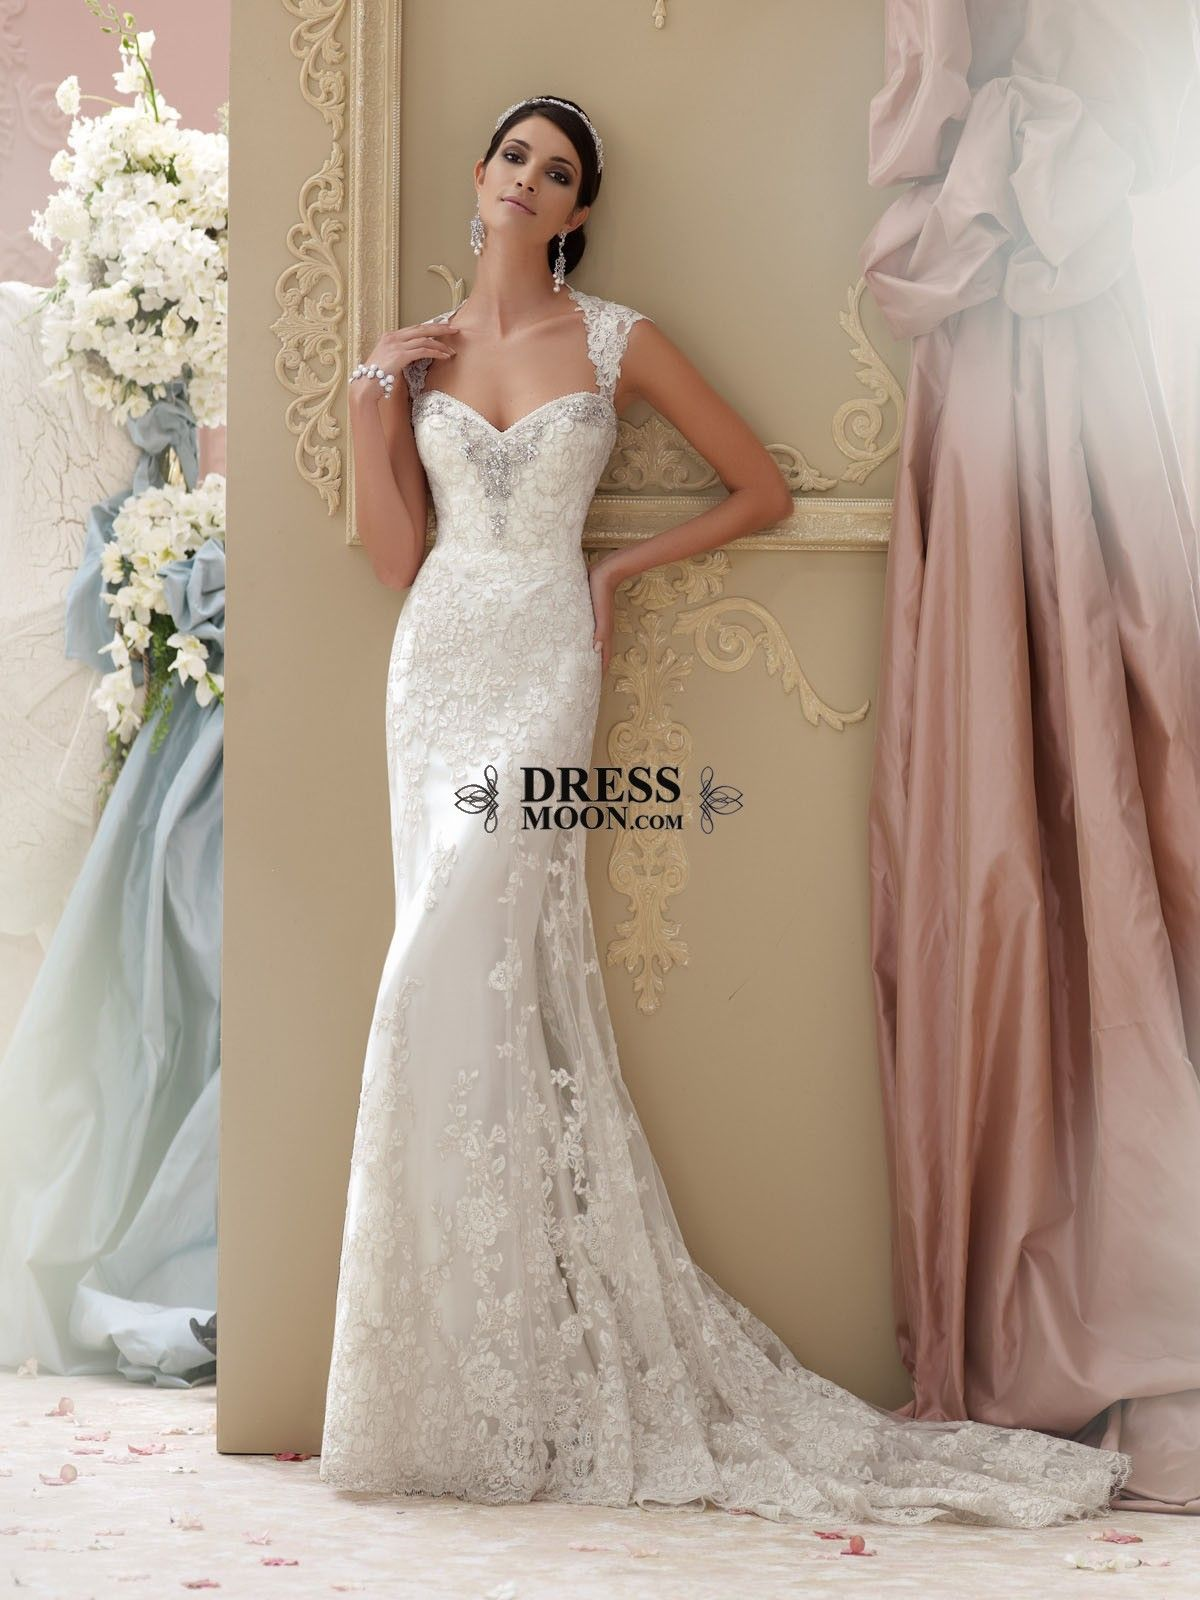 lace appliqué and tulle over soft satin slim A-line cage wedding dress with lace cap sleeves